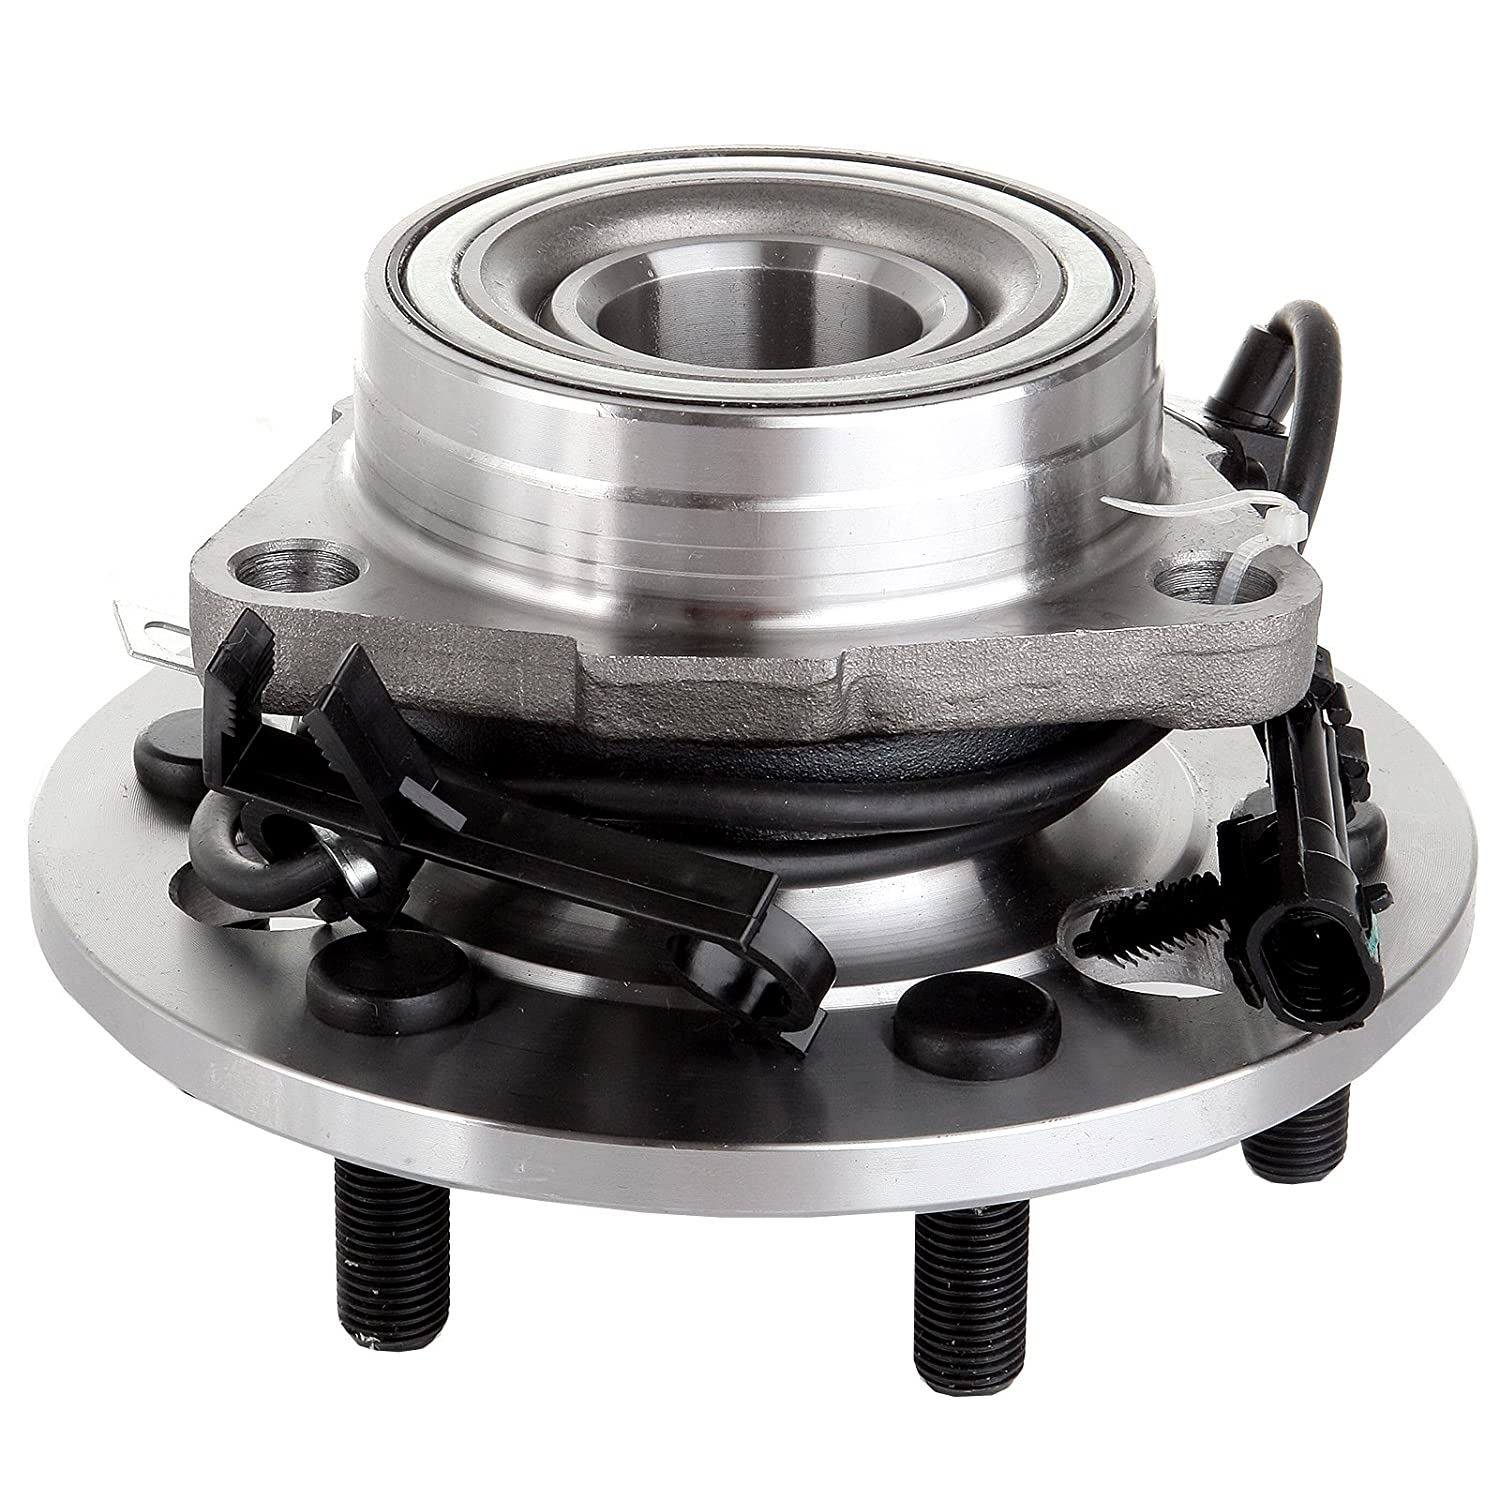 ECCPP Wheel Hub and Bearing Assembly Front 515024 fit 1995-2000 Chevy Cadillac GMC 4WD Replacement for 6 lugs wheel hub with ABS 3 Bolt Flange